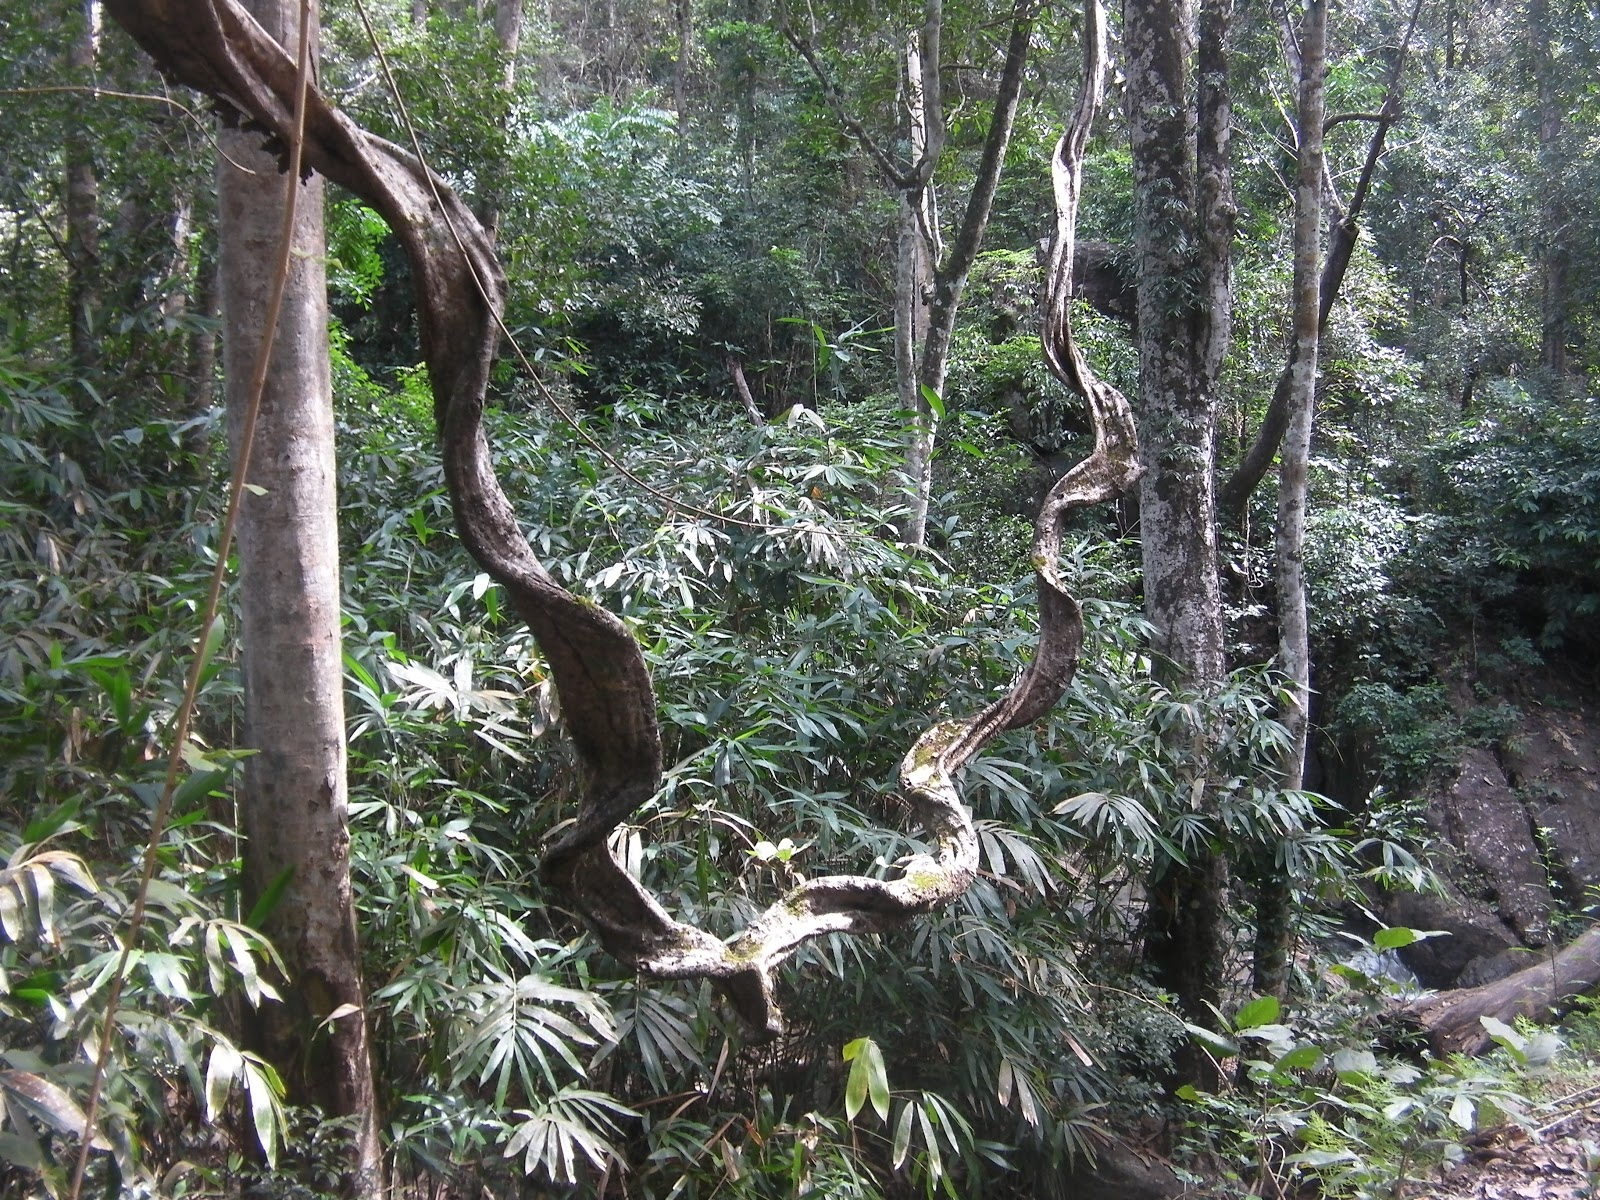 Biological Diversity Wallpaper The Forests in Kerala in The